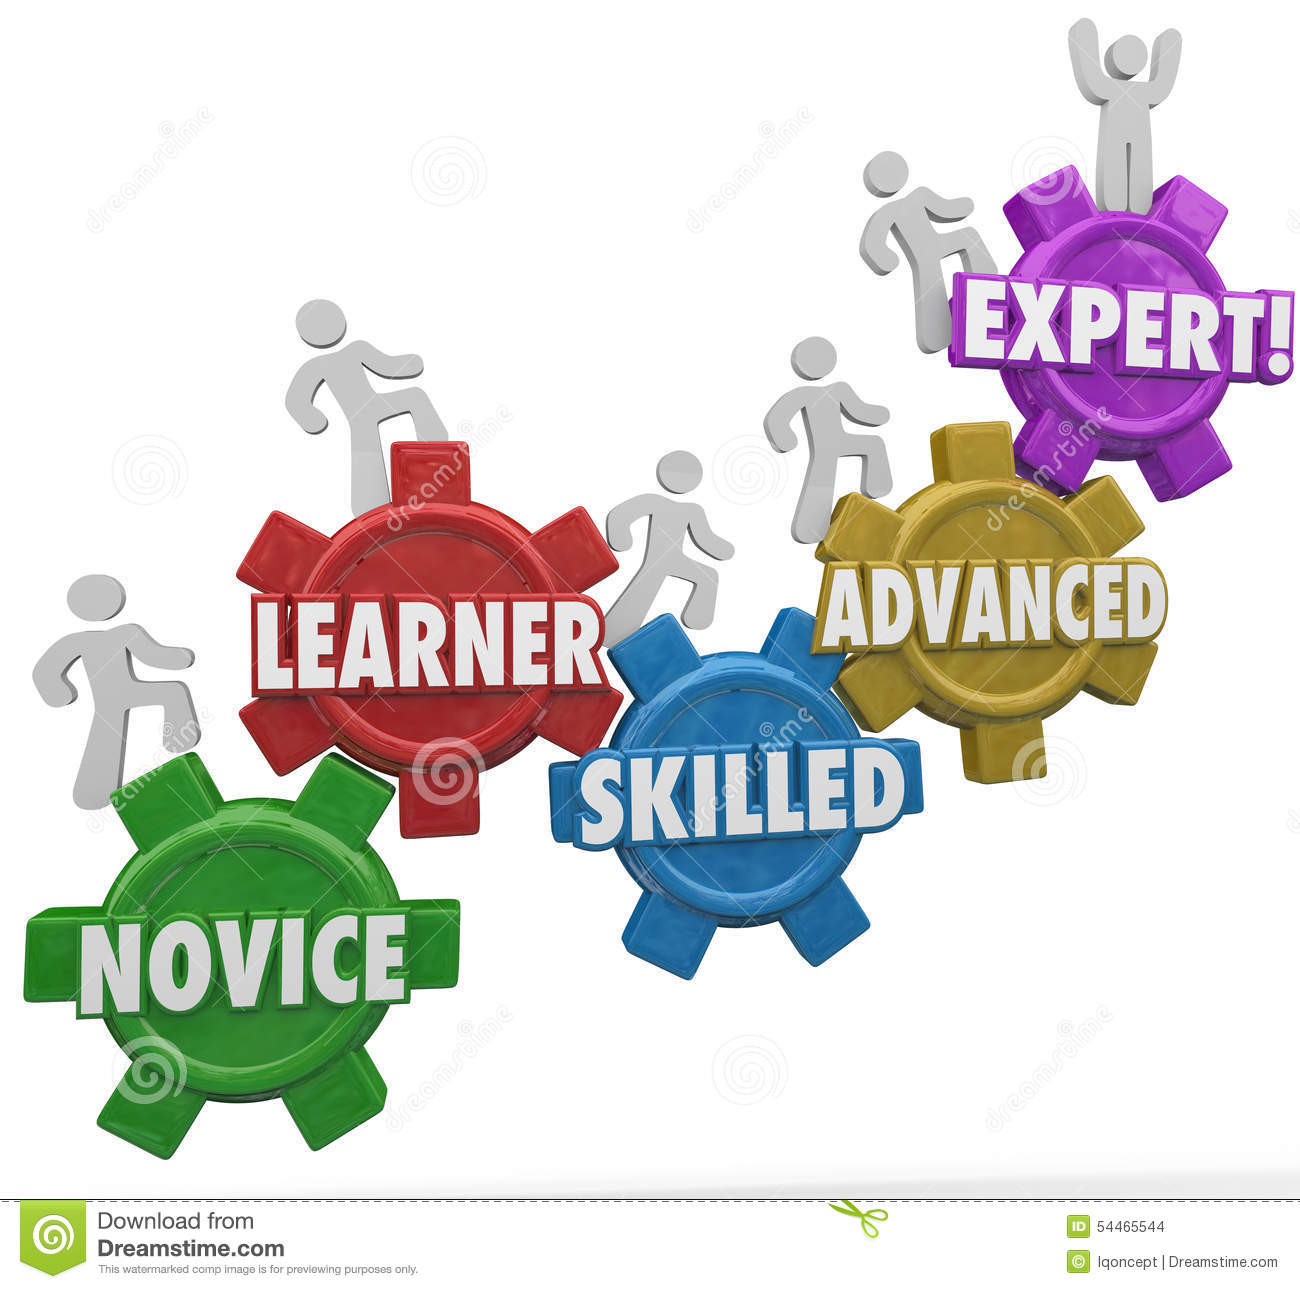 Expertise Levels Novice Learning Skilled Advanced People